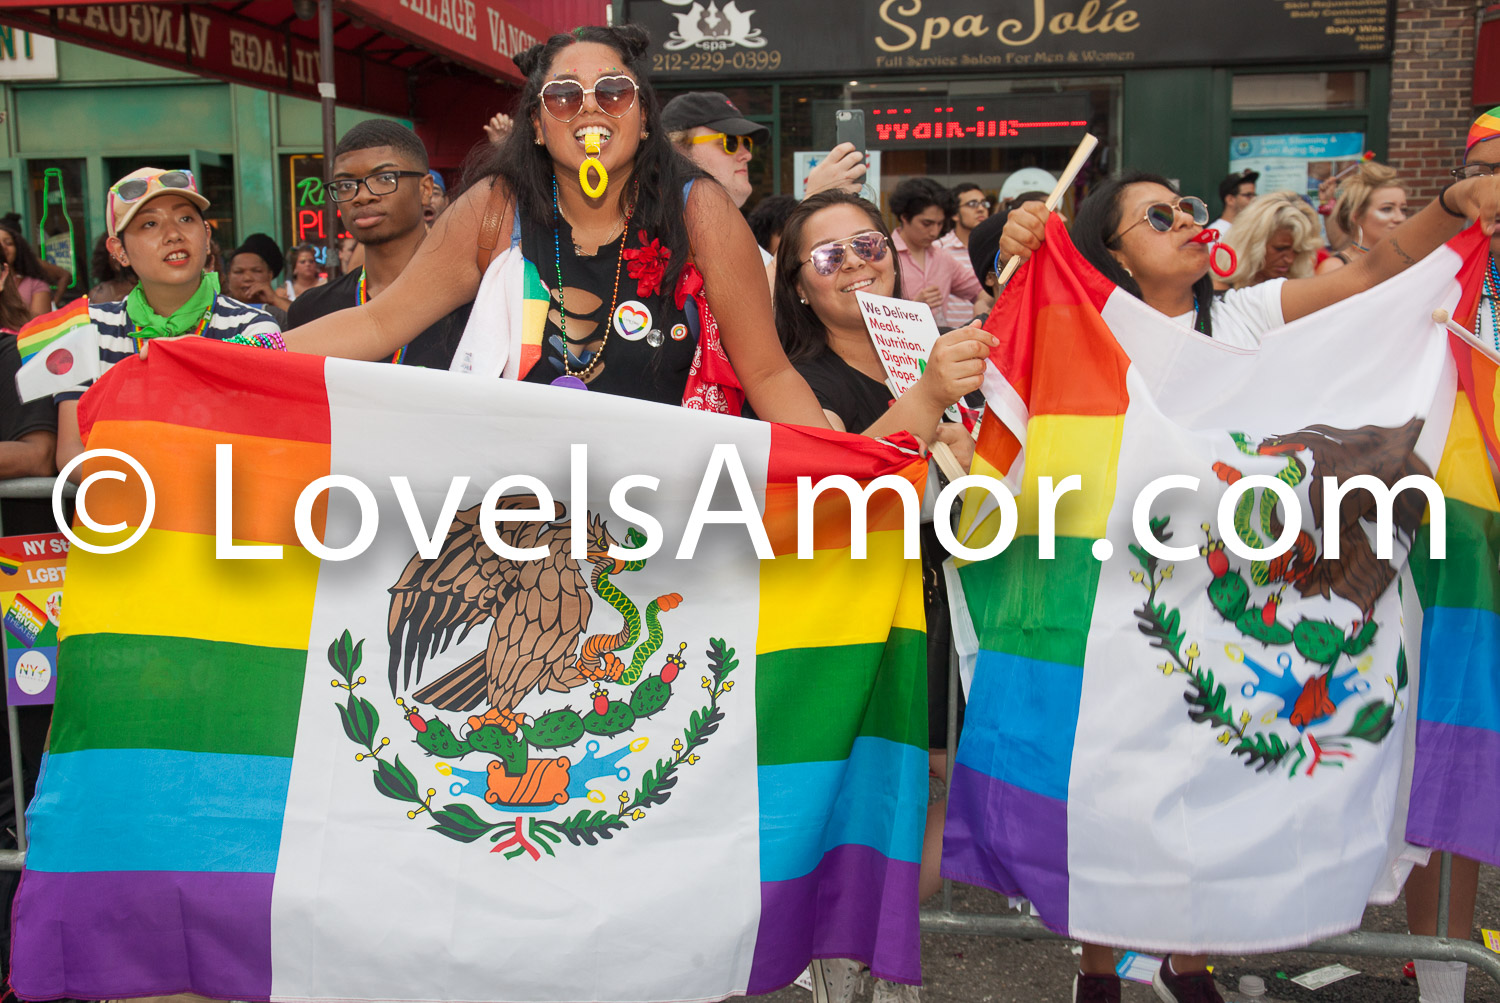 Sunday, June 24, 2018. New York City – New Yorkers celebrated the biggest LGBTQ Pride March in the United States of America. This year, the NYC Pride March celebrated 49 years. Photo by LoveIsAmor.com